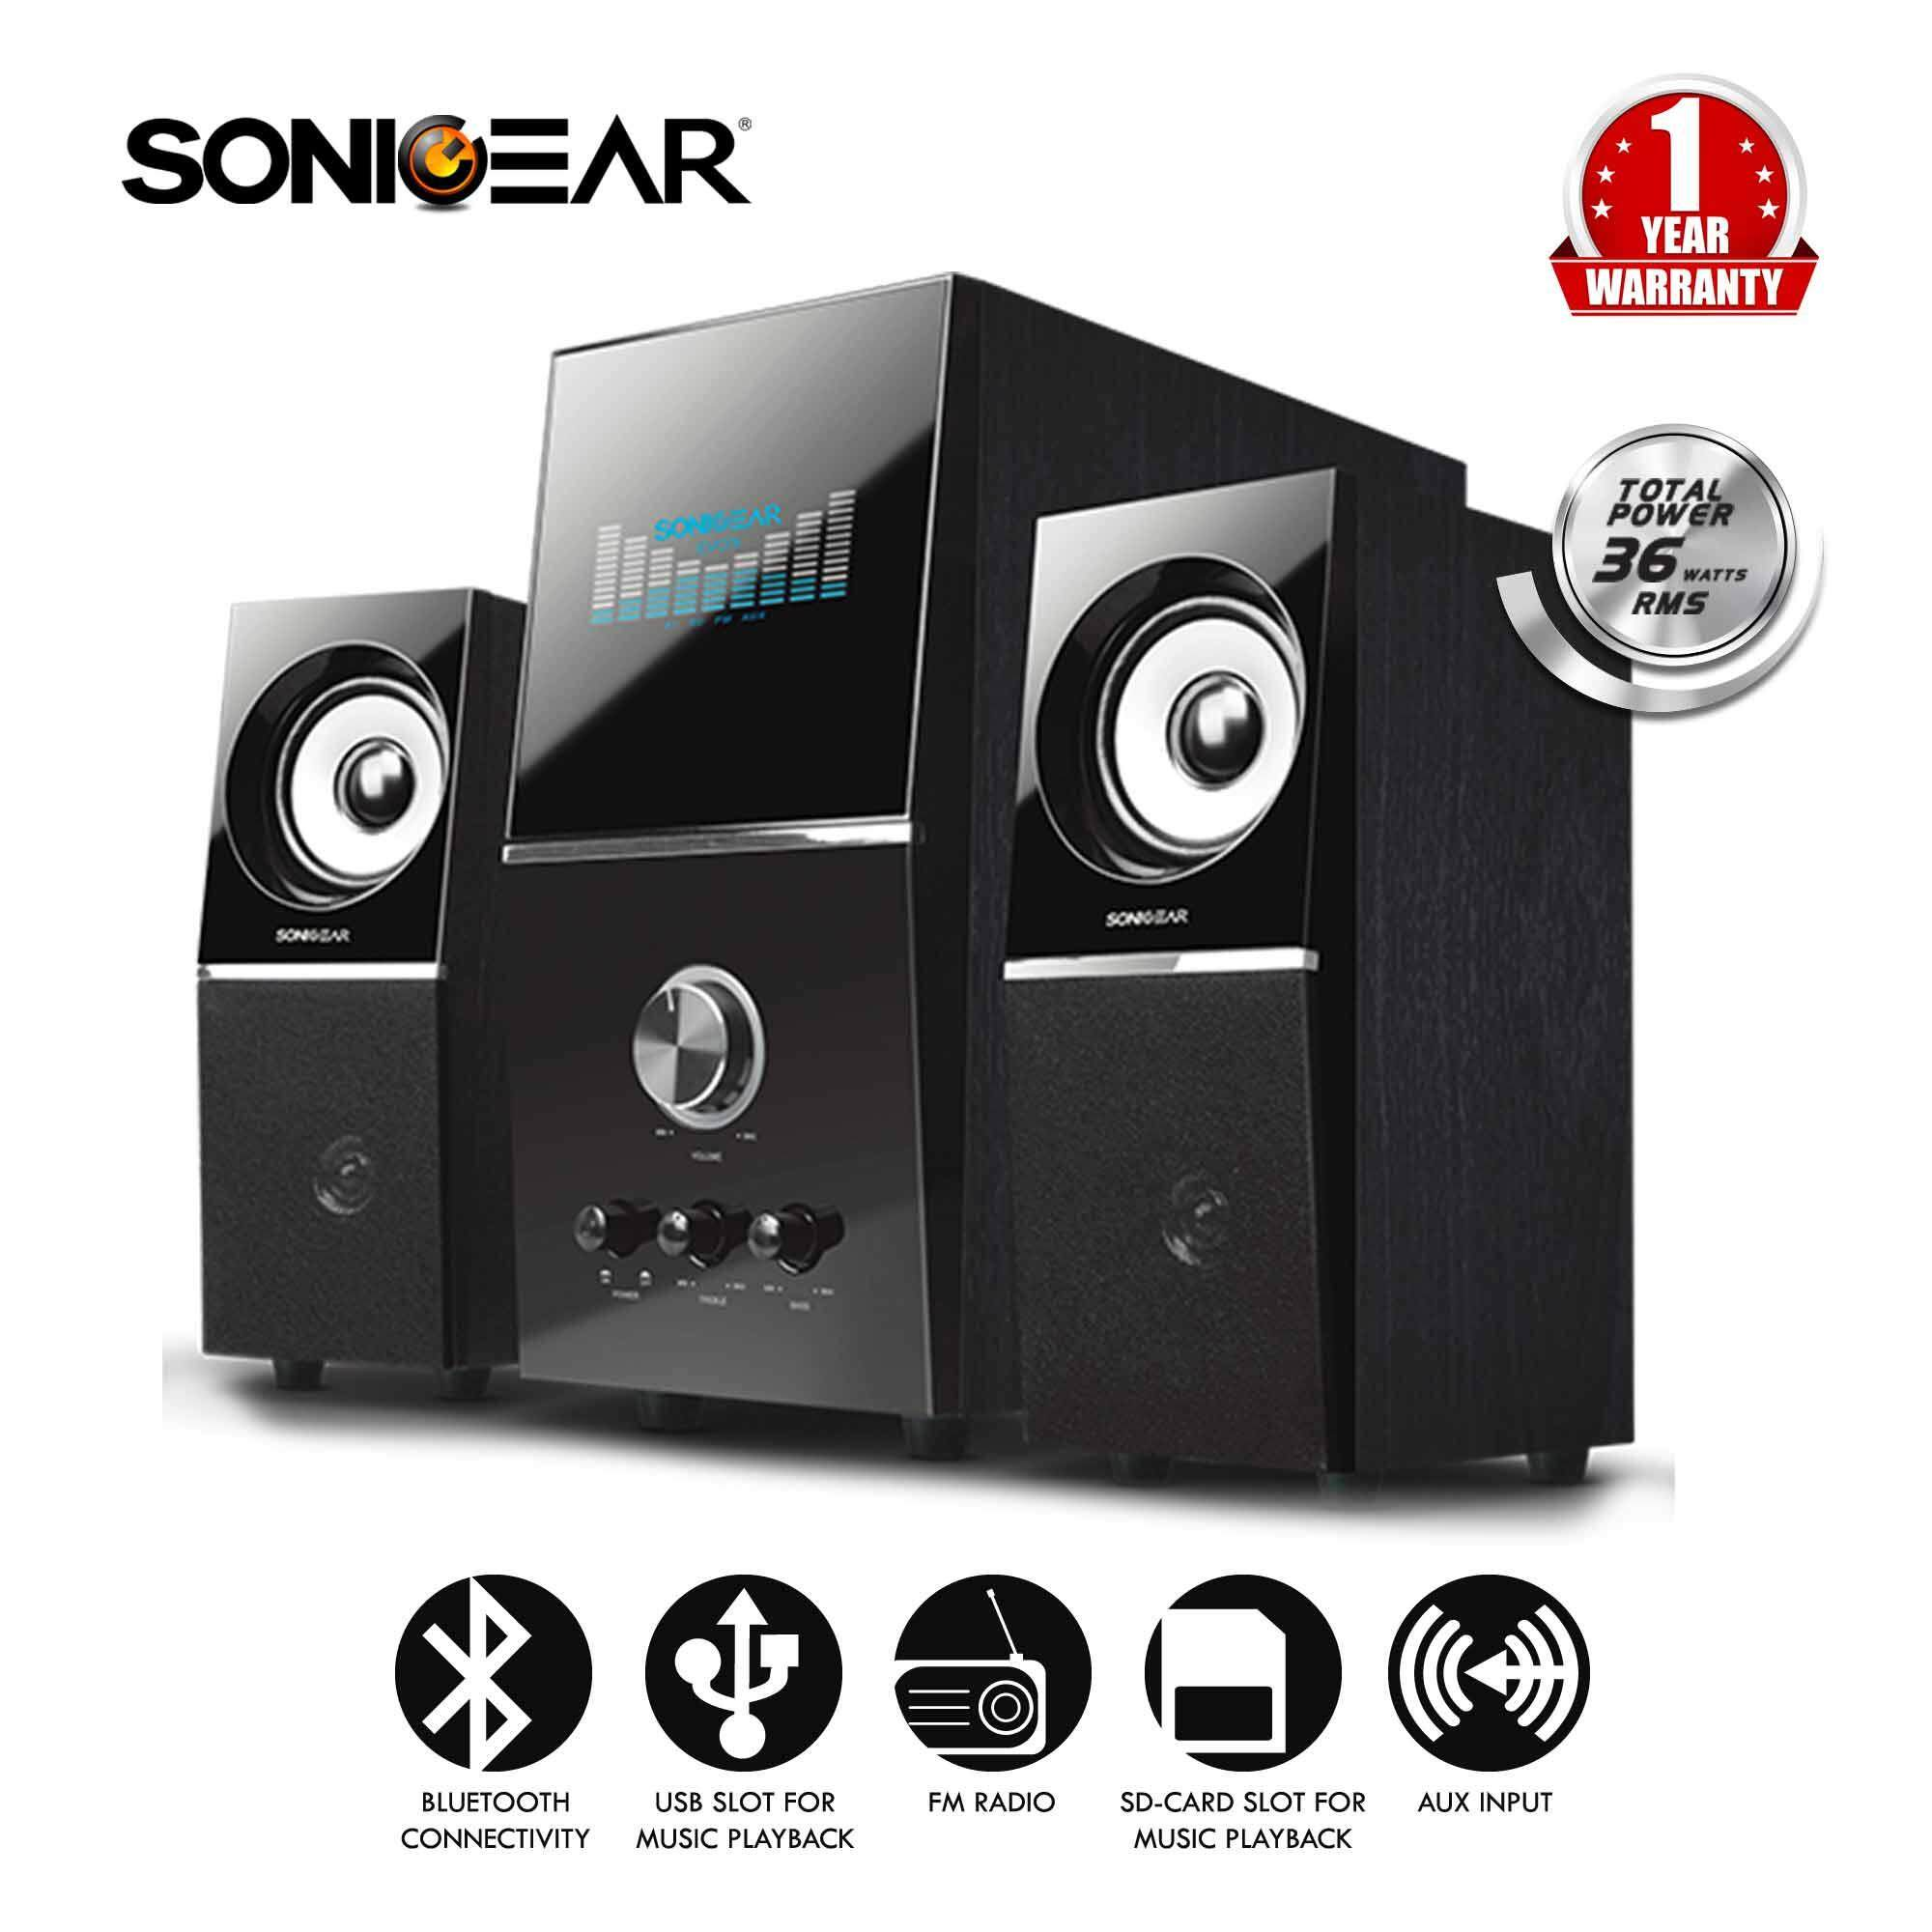 Sonicgear Evo 5 Pro Bluetooth Multimedia Speaker With Usb/fm Radio/sd-Card By Leapfrog E-Store.